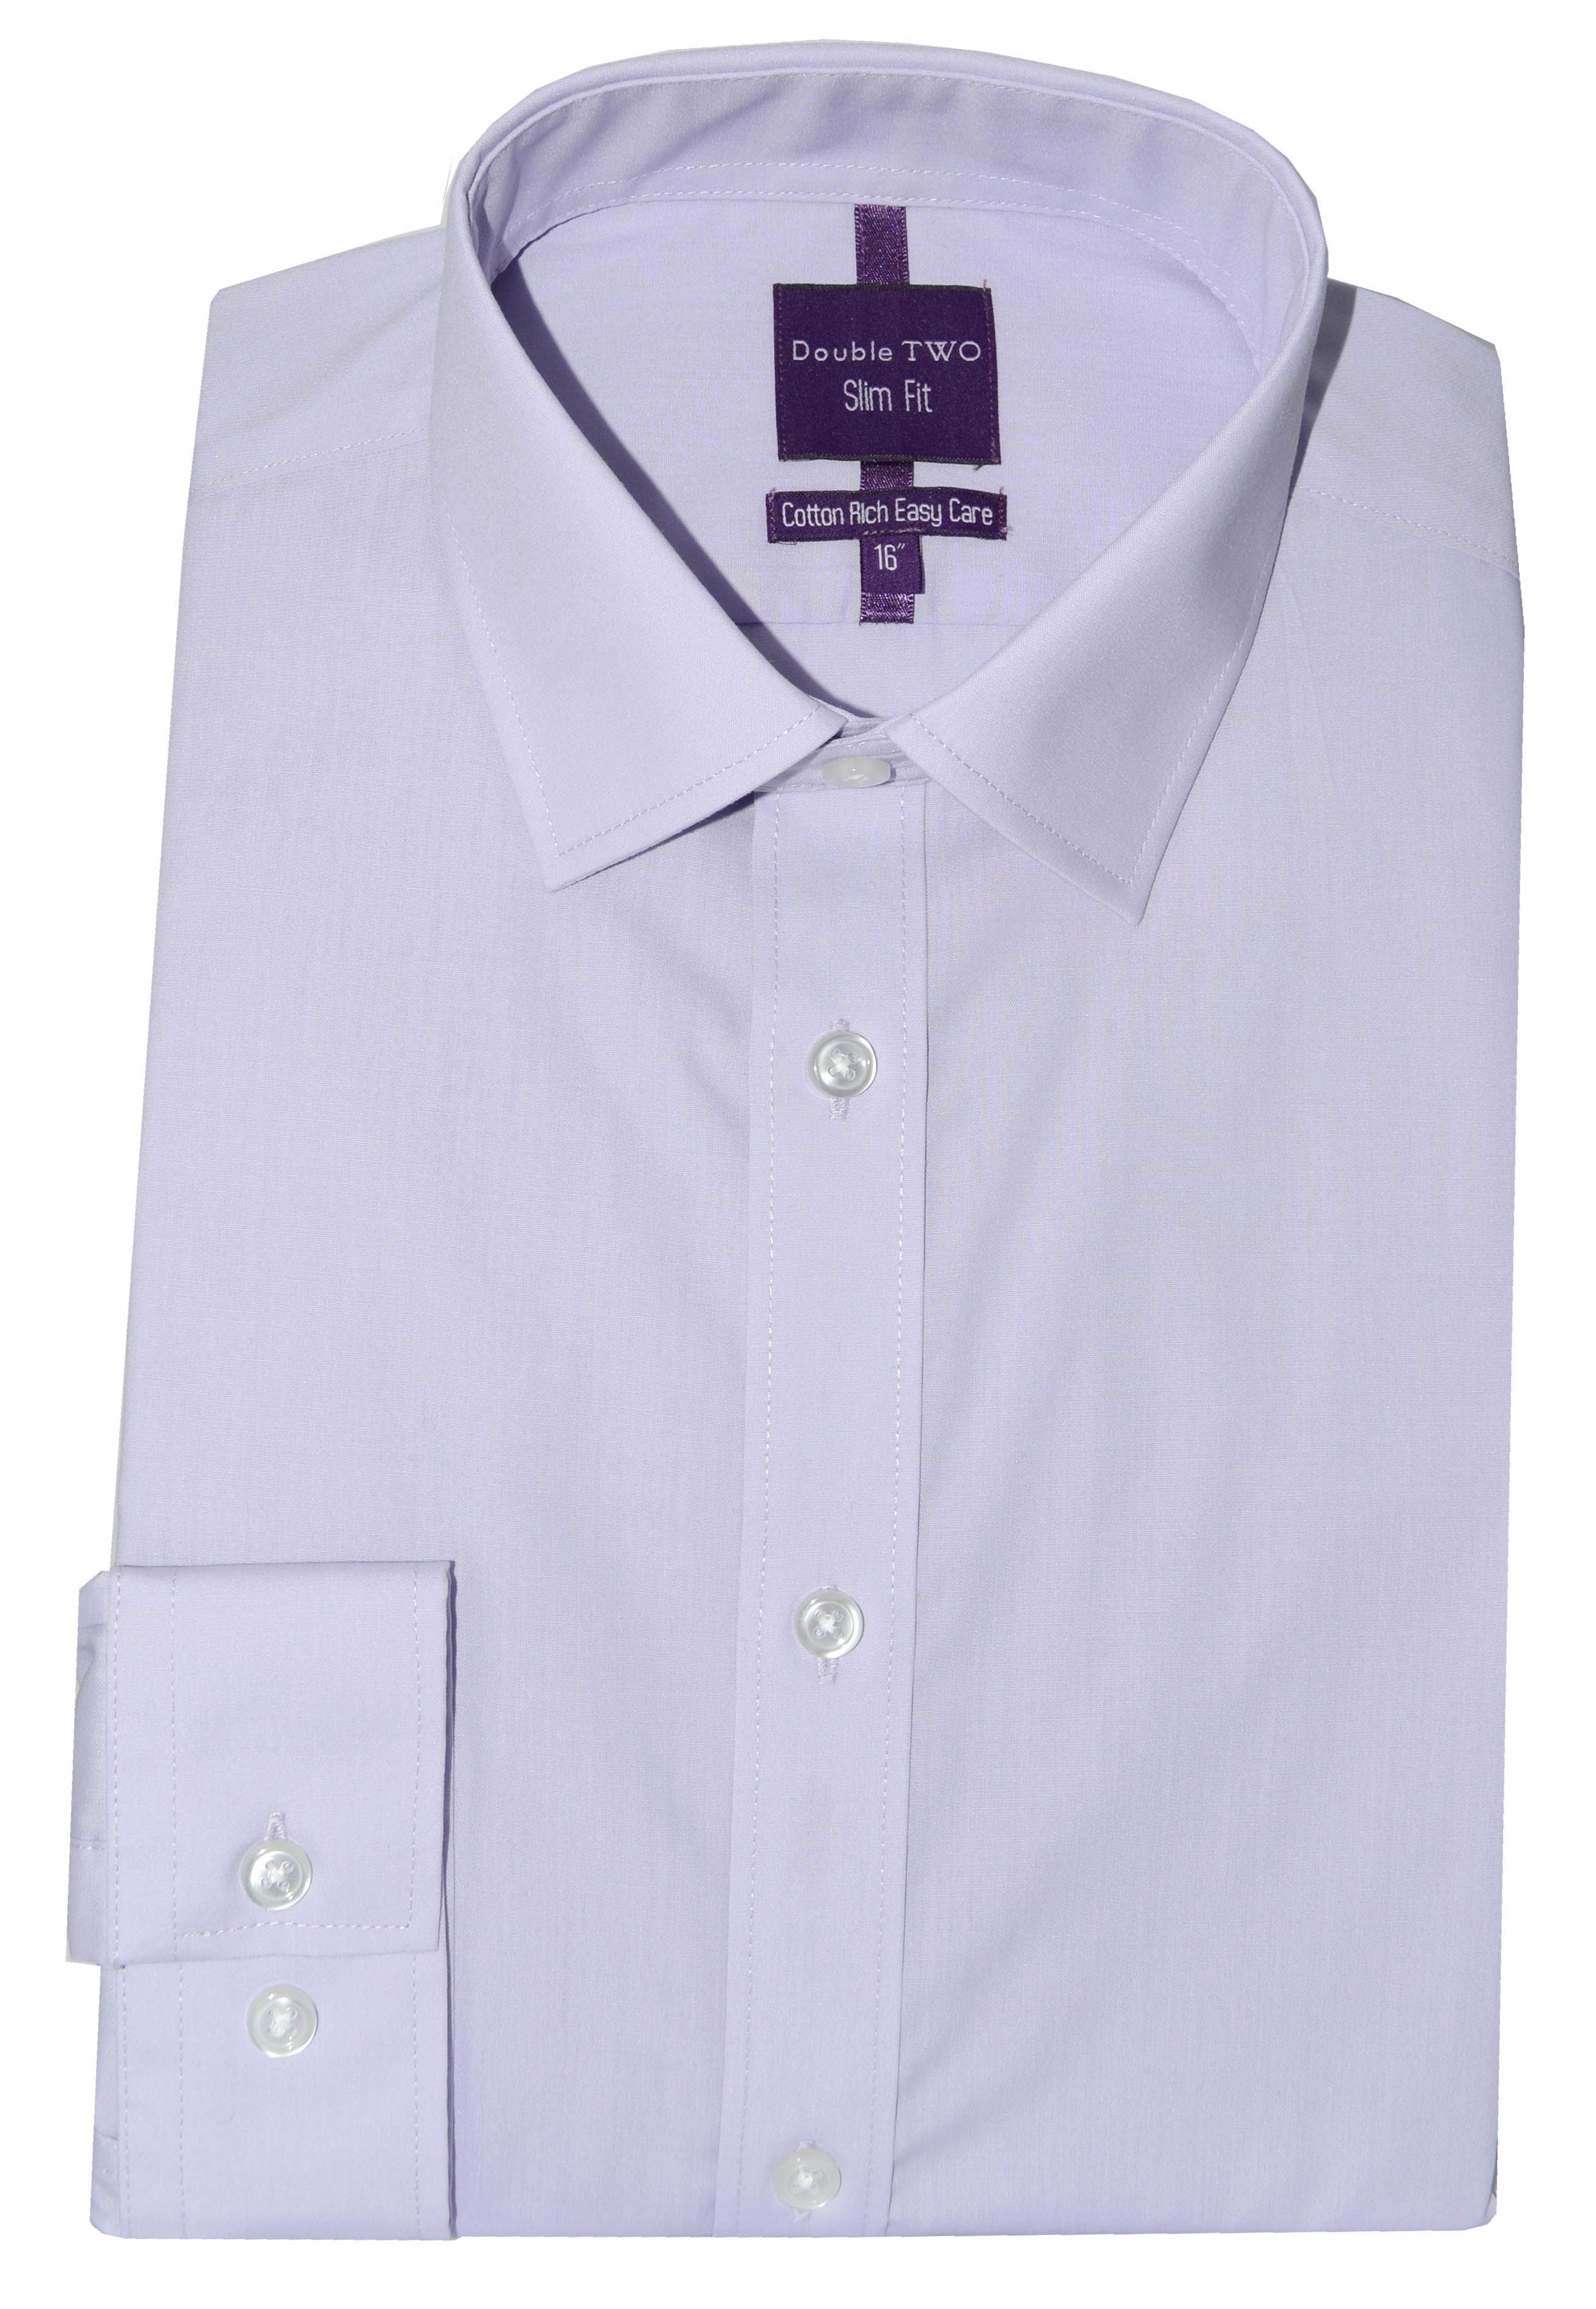 Double Two Men's Double TWO Slim Fit Formal Shirt, Lilac